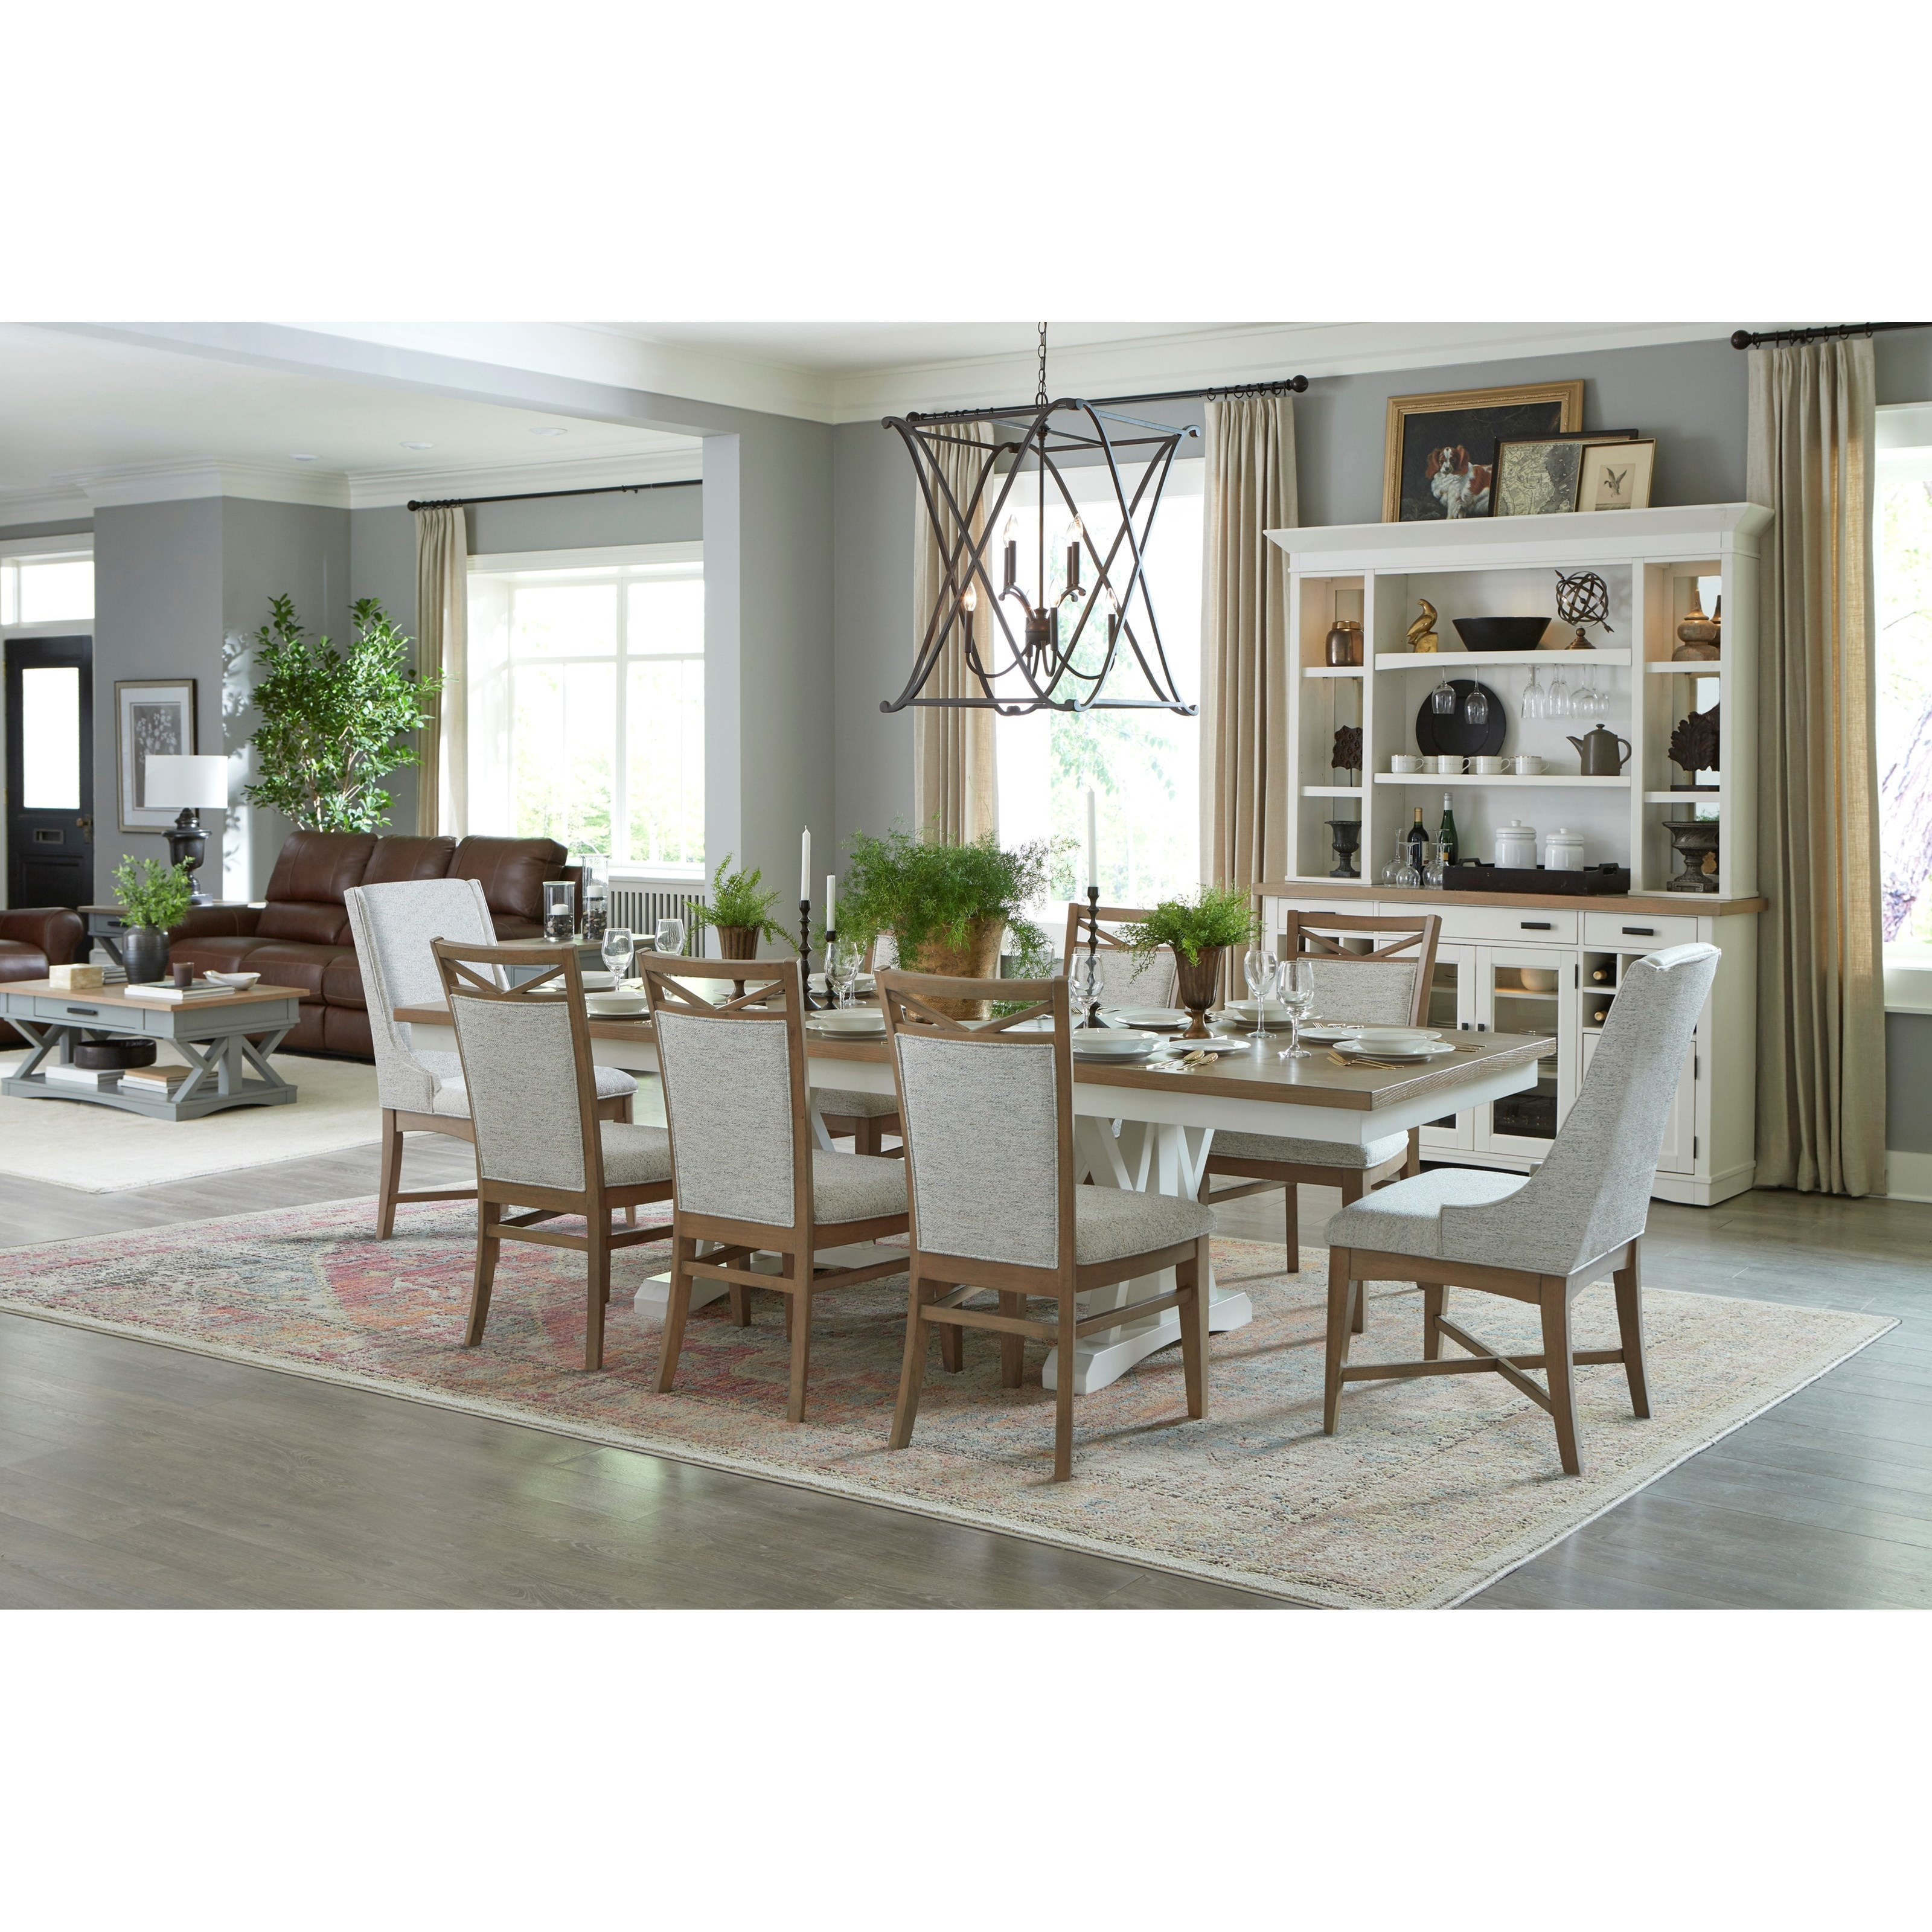 Americana Modern Formal Dining Room Group by Parker House at Westrich Furniture & Appliances